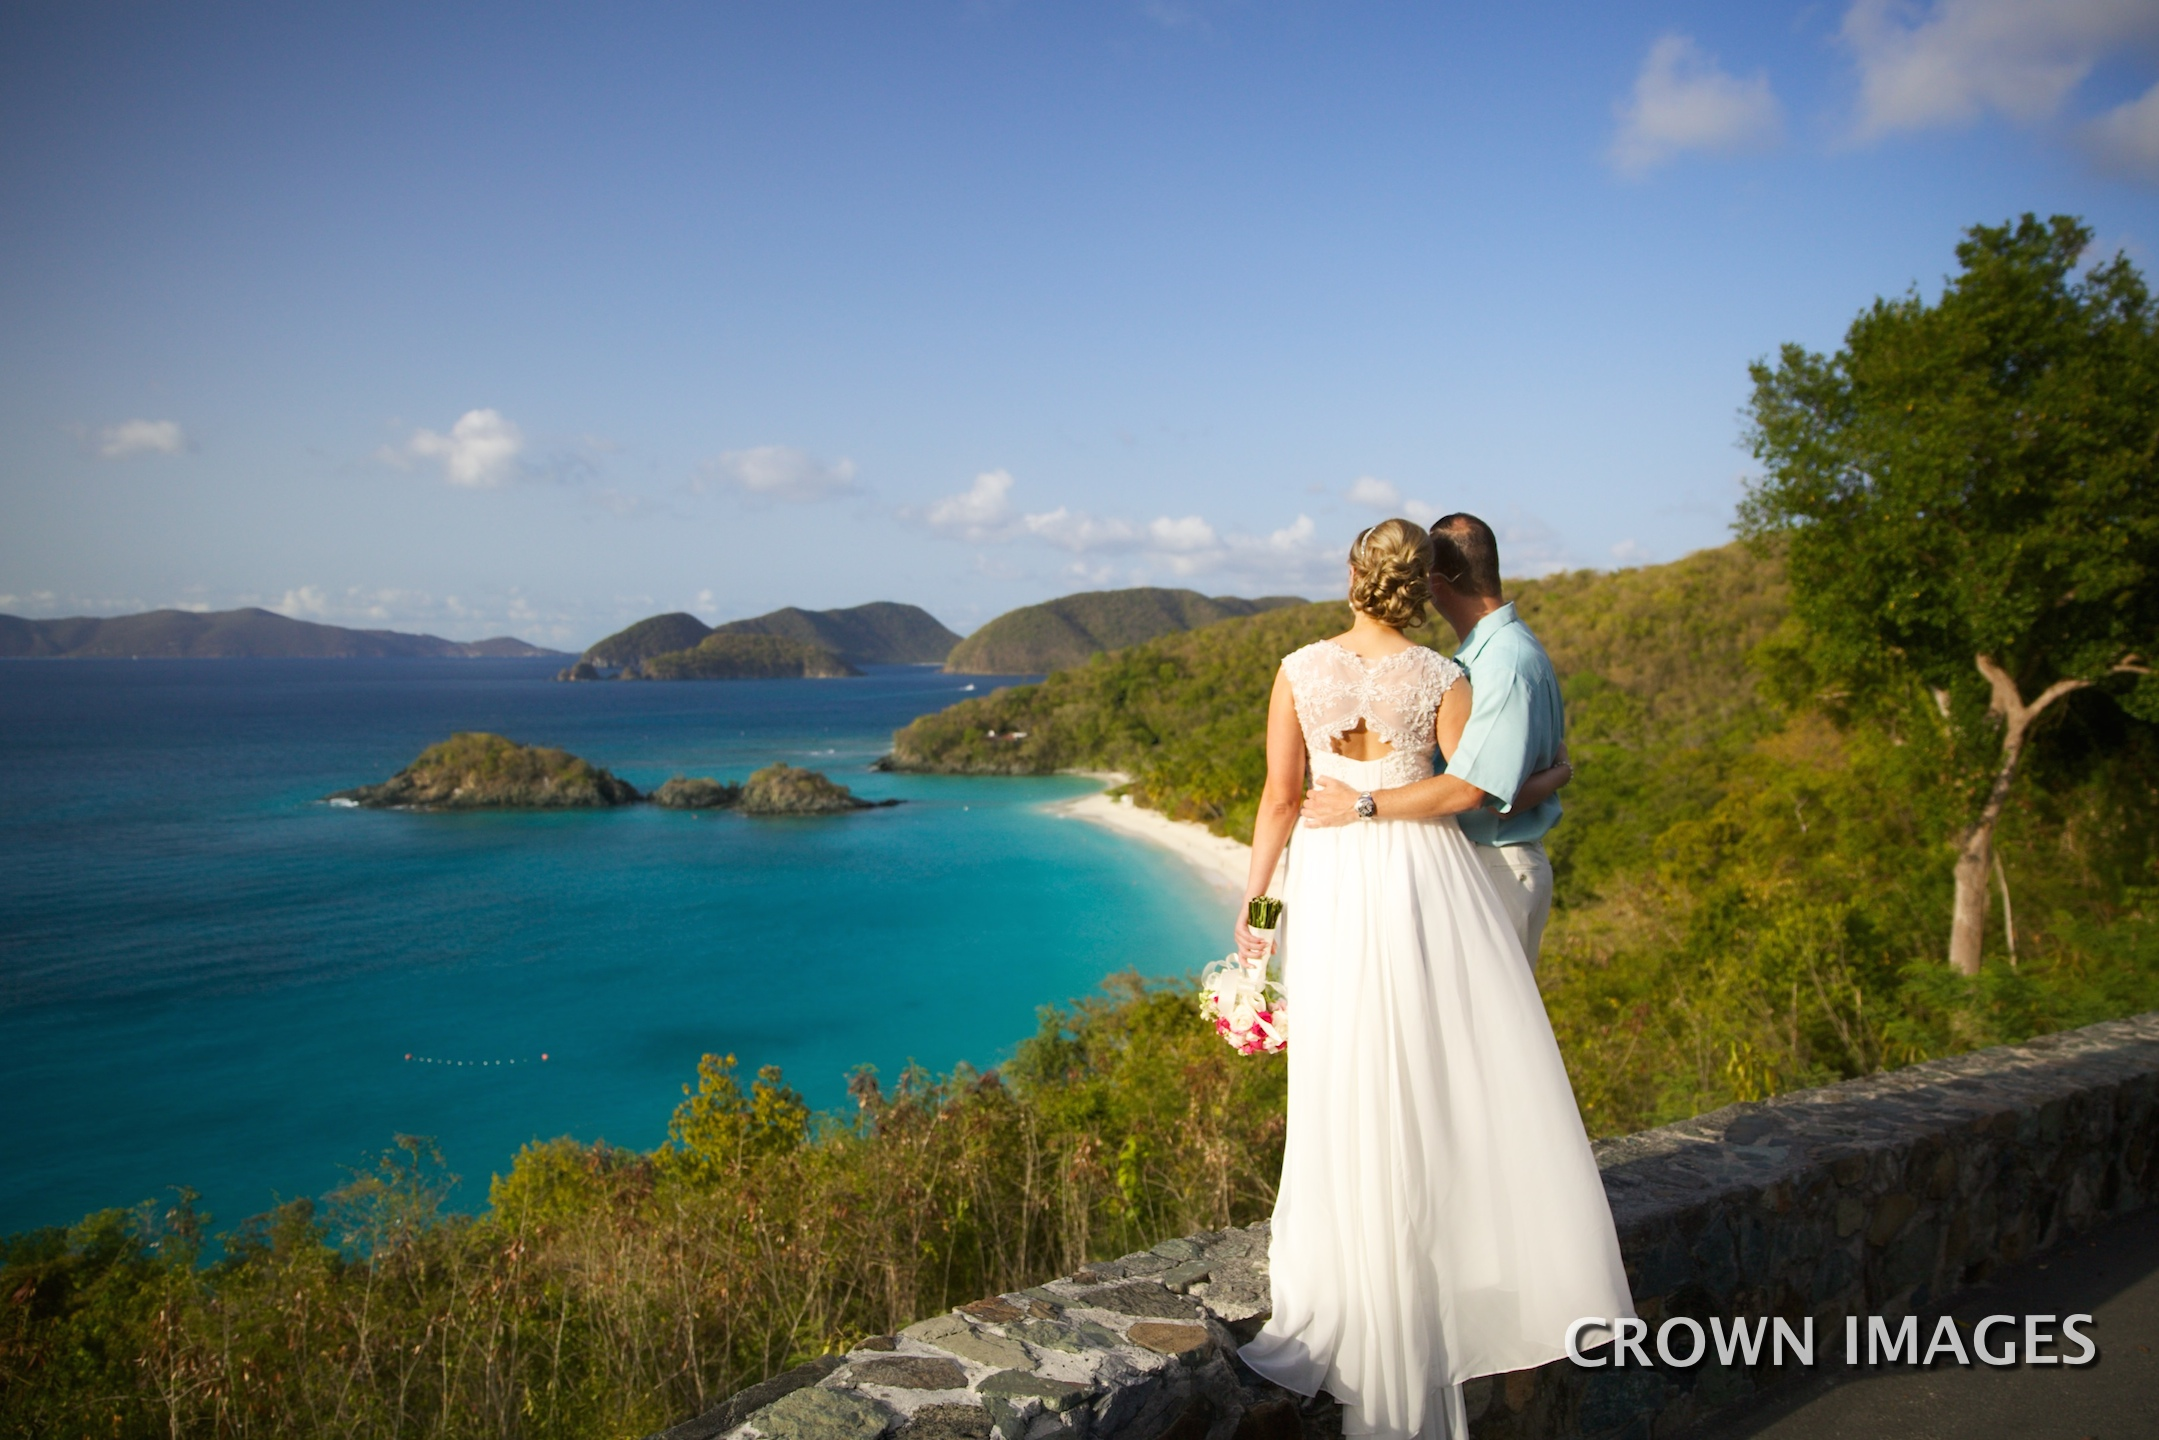 overlook for wedding photos st john photo by crown images